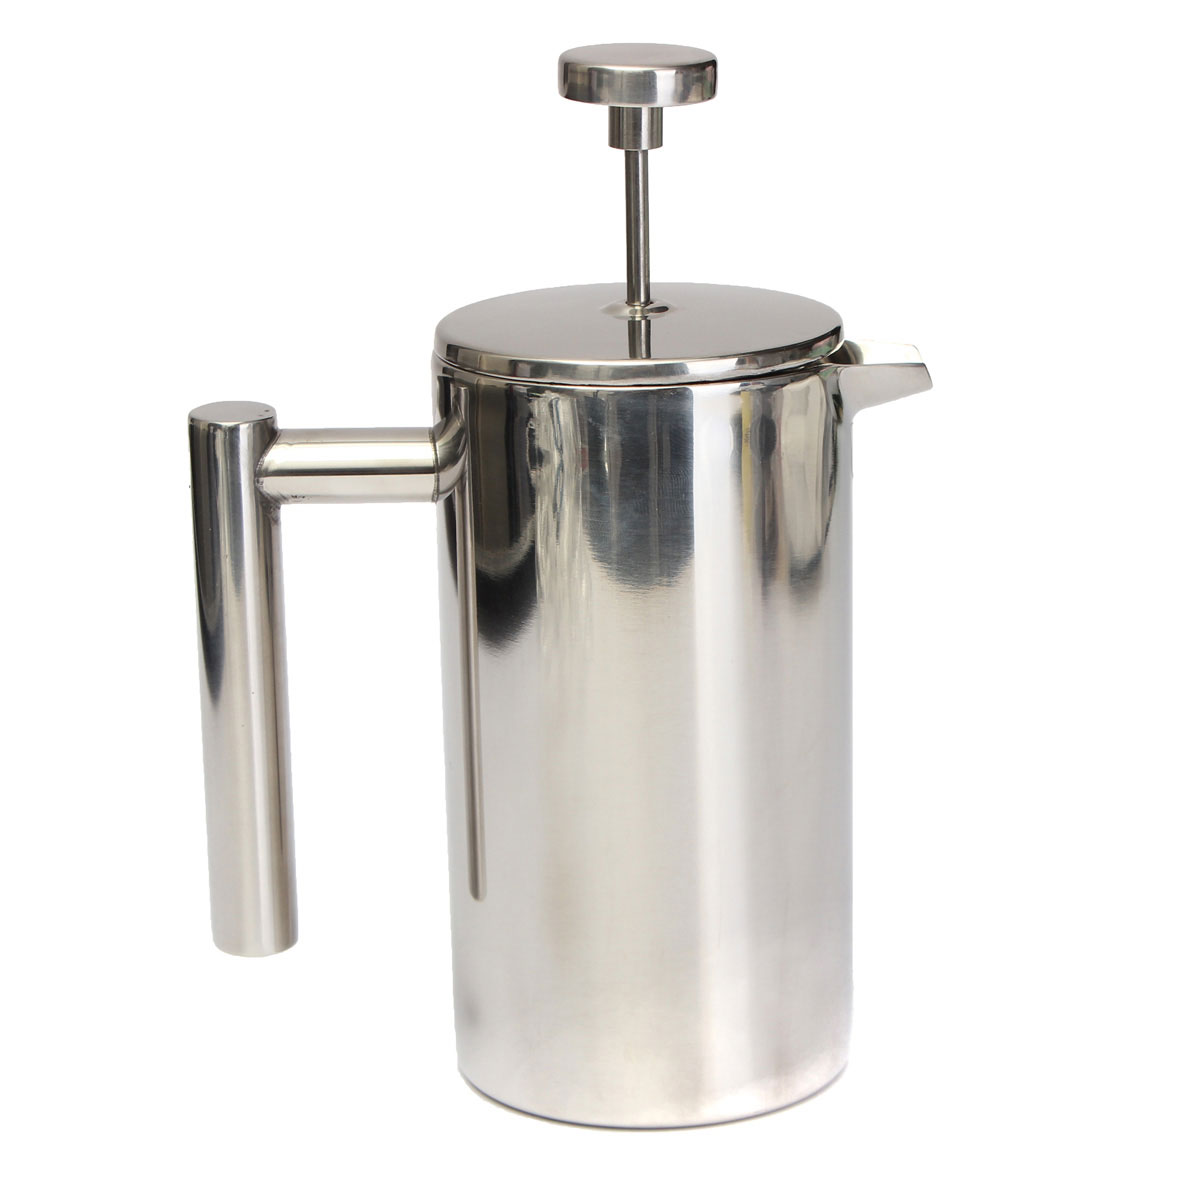 Tea Coffee Maker French Press : 350ml Double Wall Stainless Steel Coffee Fliter Plunger French Press Tea Maker eBay